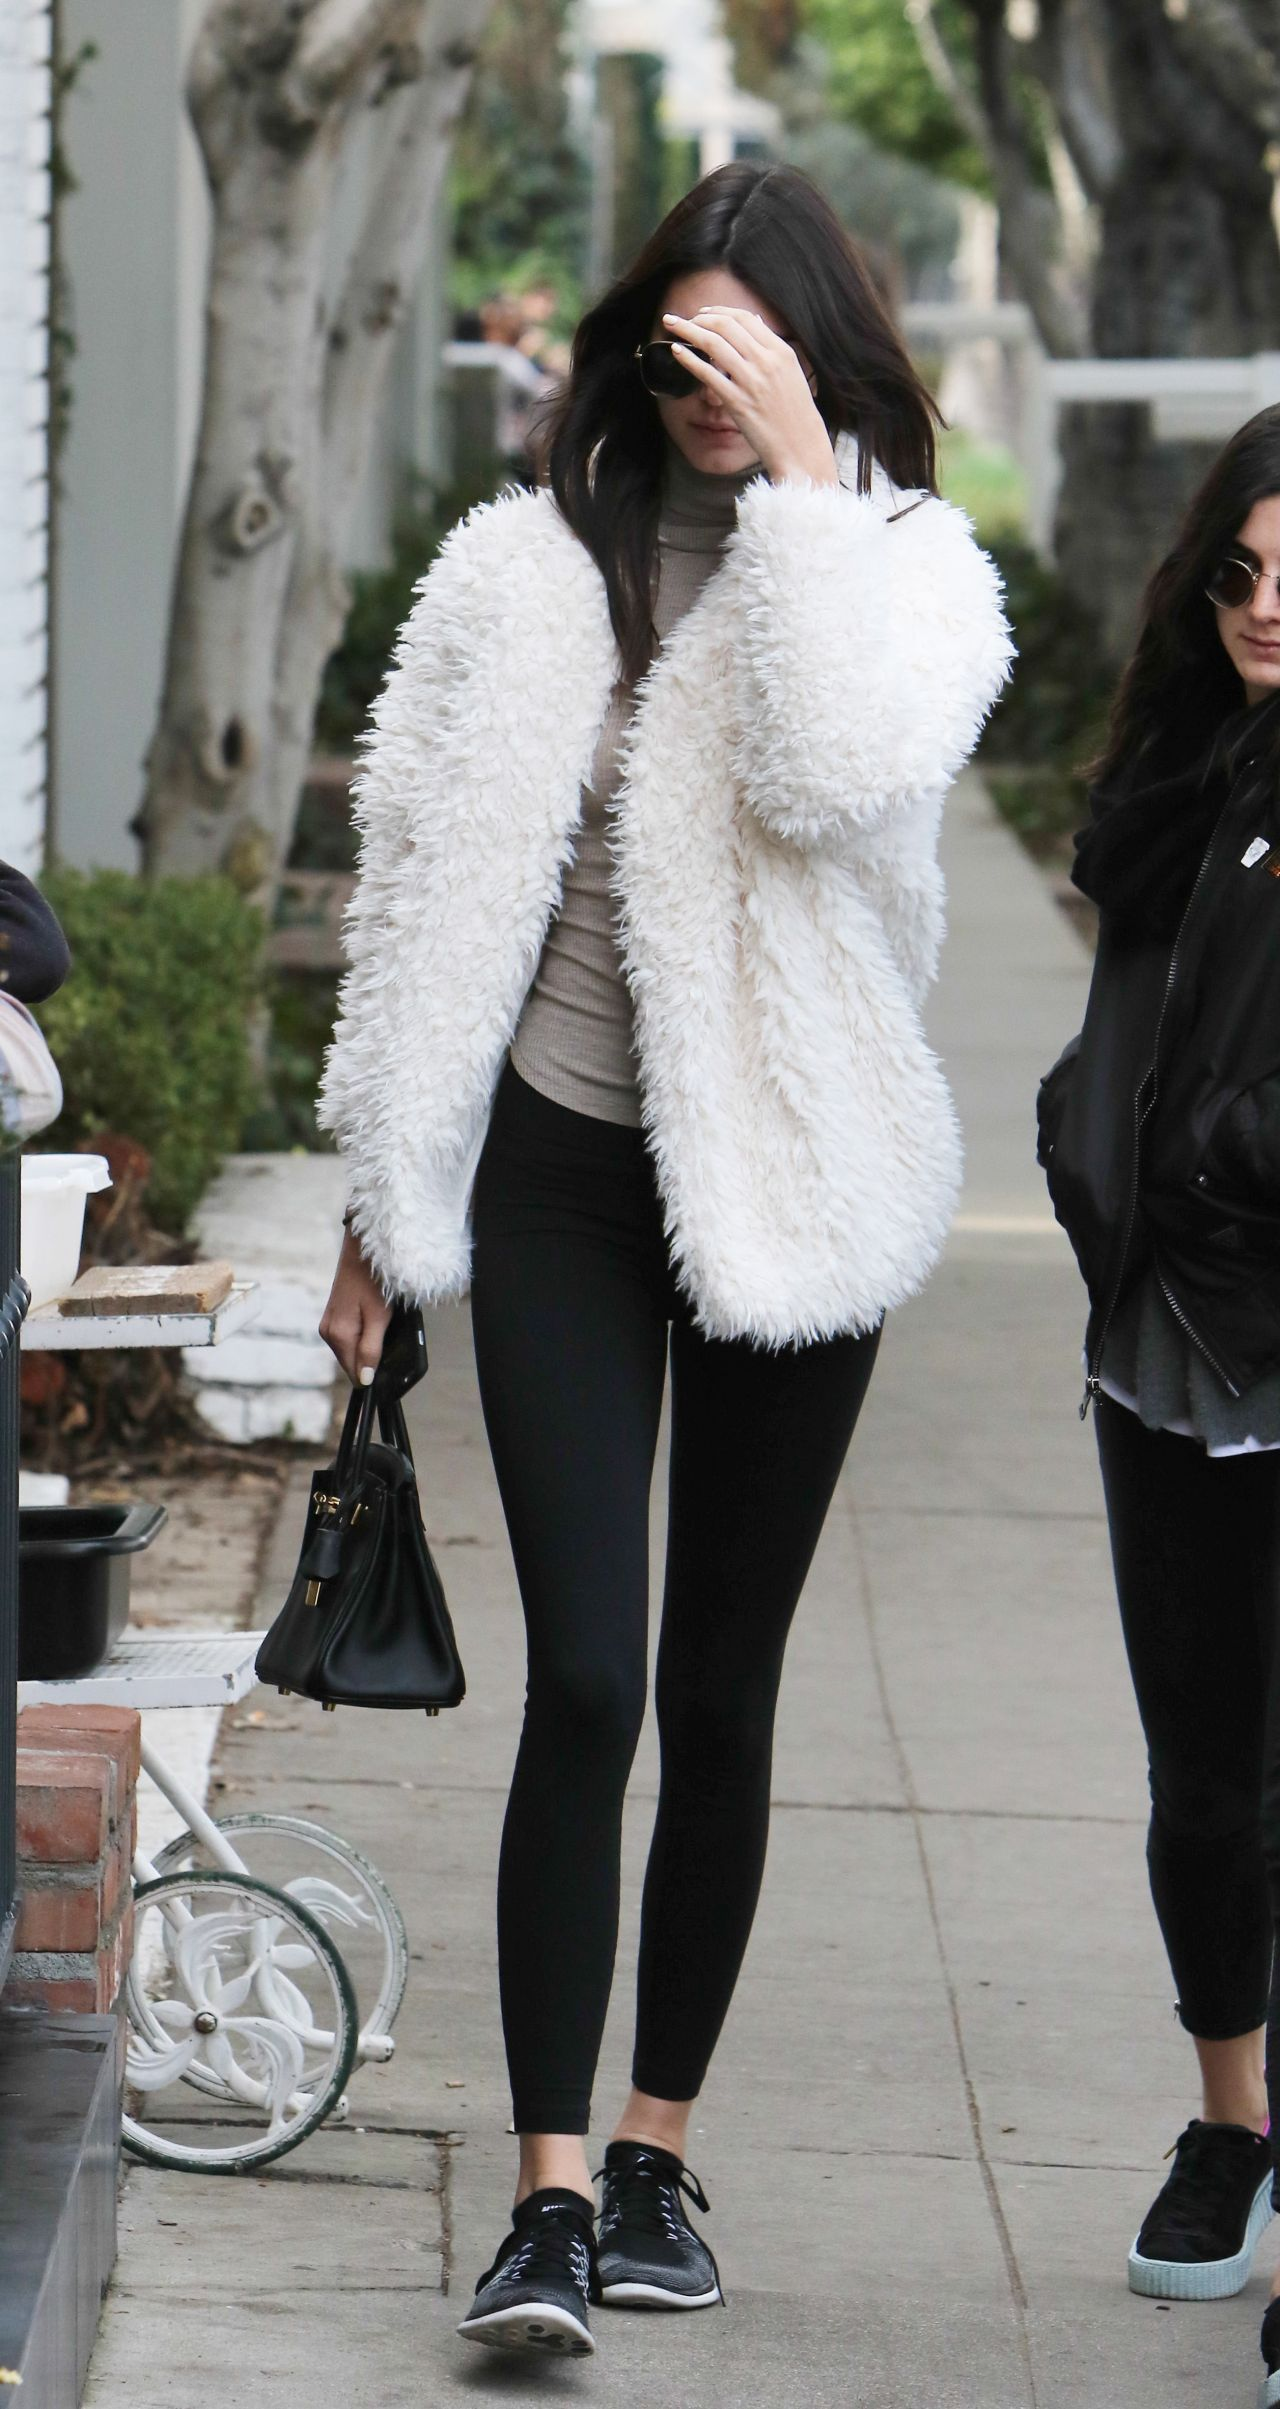 Out In Los Angeles, CA 1/3/2016